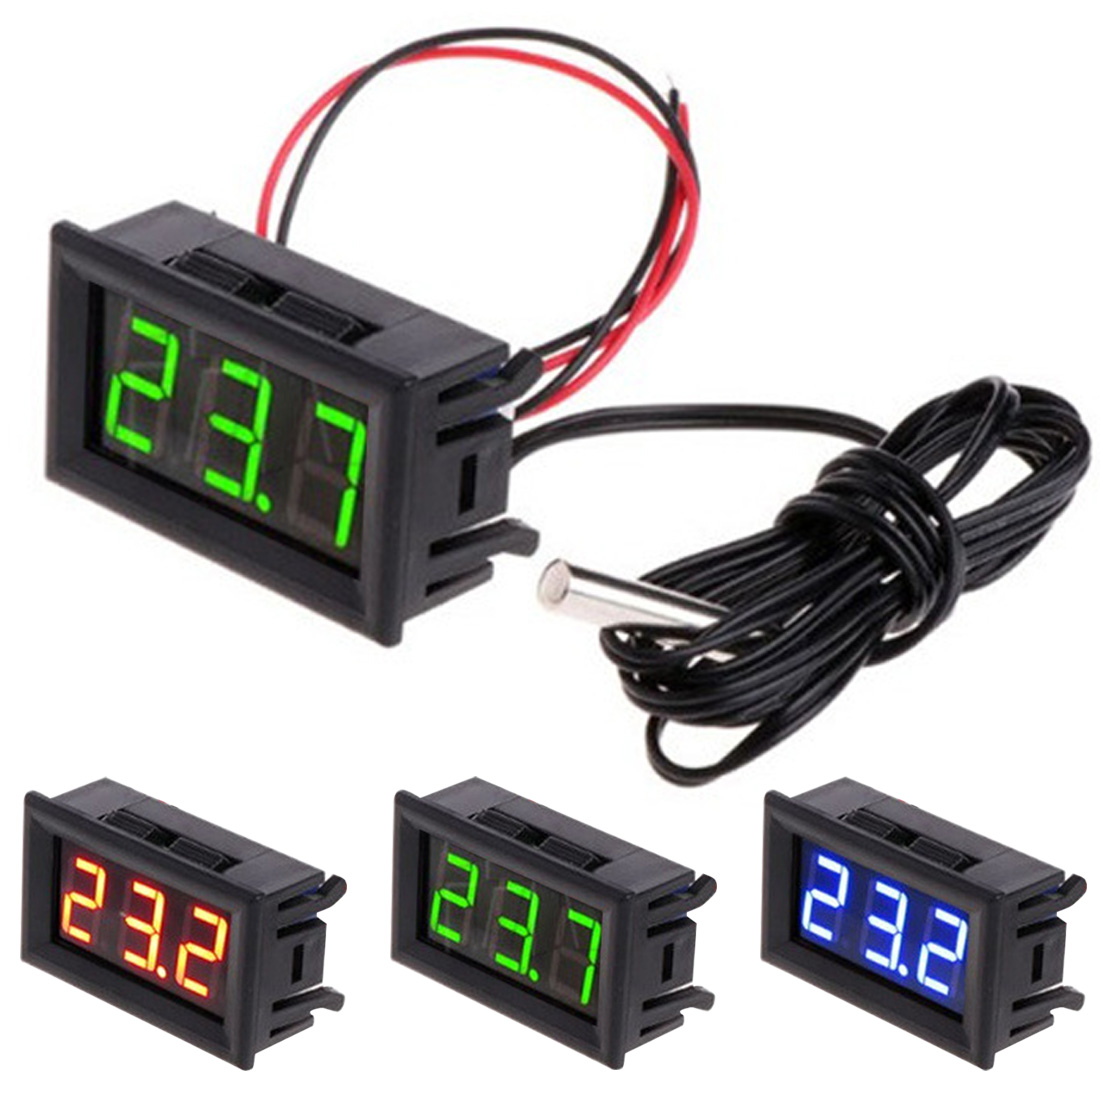 New -50 ~ 110 degree DC 5-12V  Digital LED Thermometer Car Temperature Monitor Panel Meter  High quality